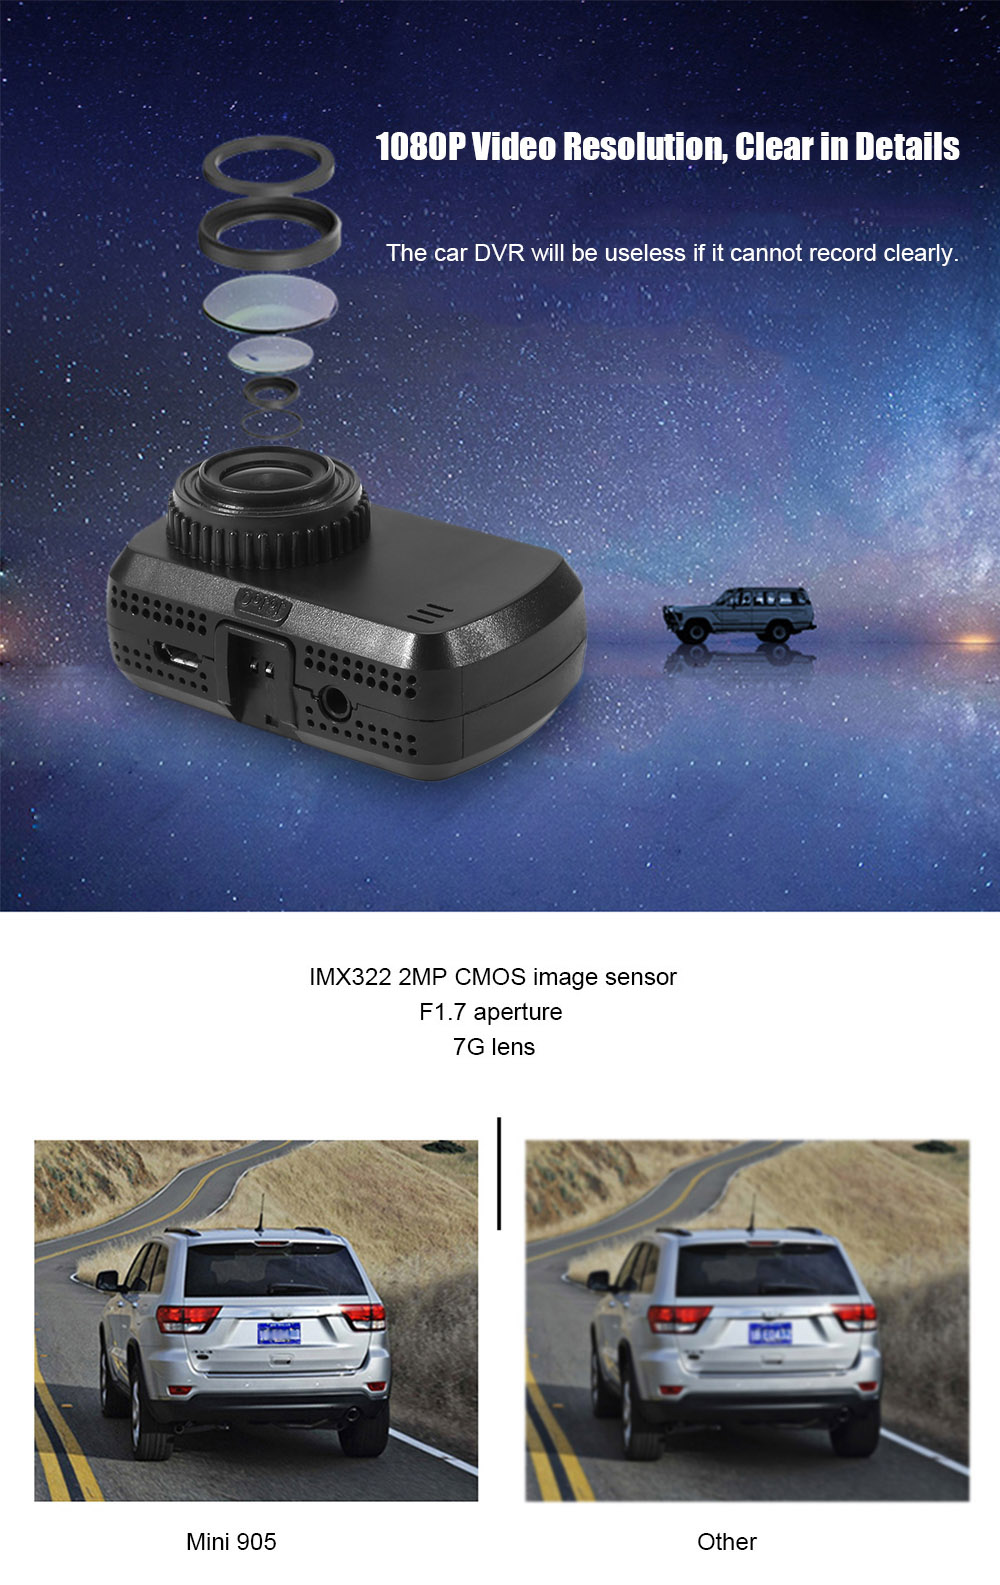 JUSKY IMX322 Mini 905 1.5 inch 1080P Car DVR 135 Degree FOV with GPS Positioning WiFi Function